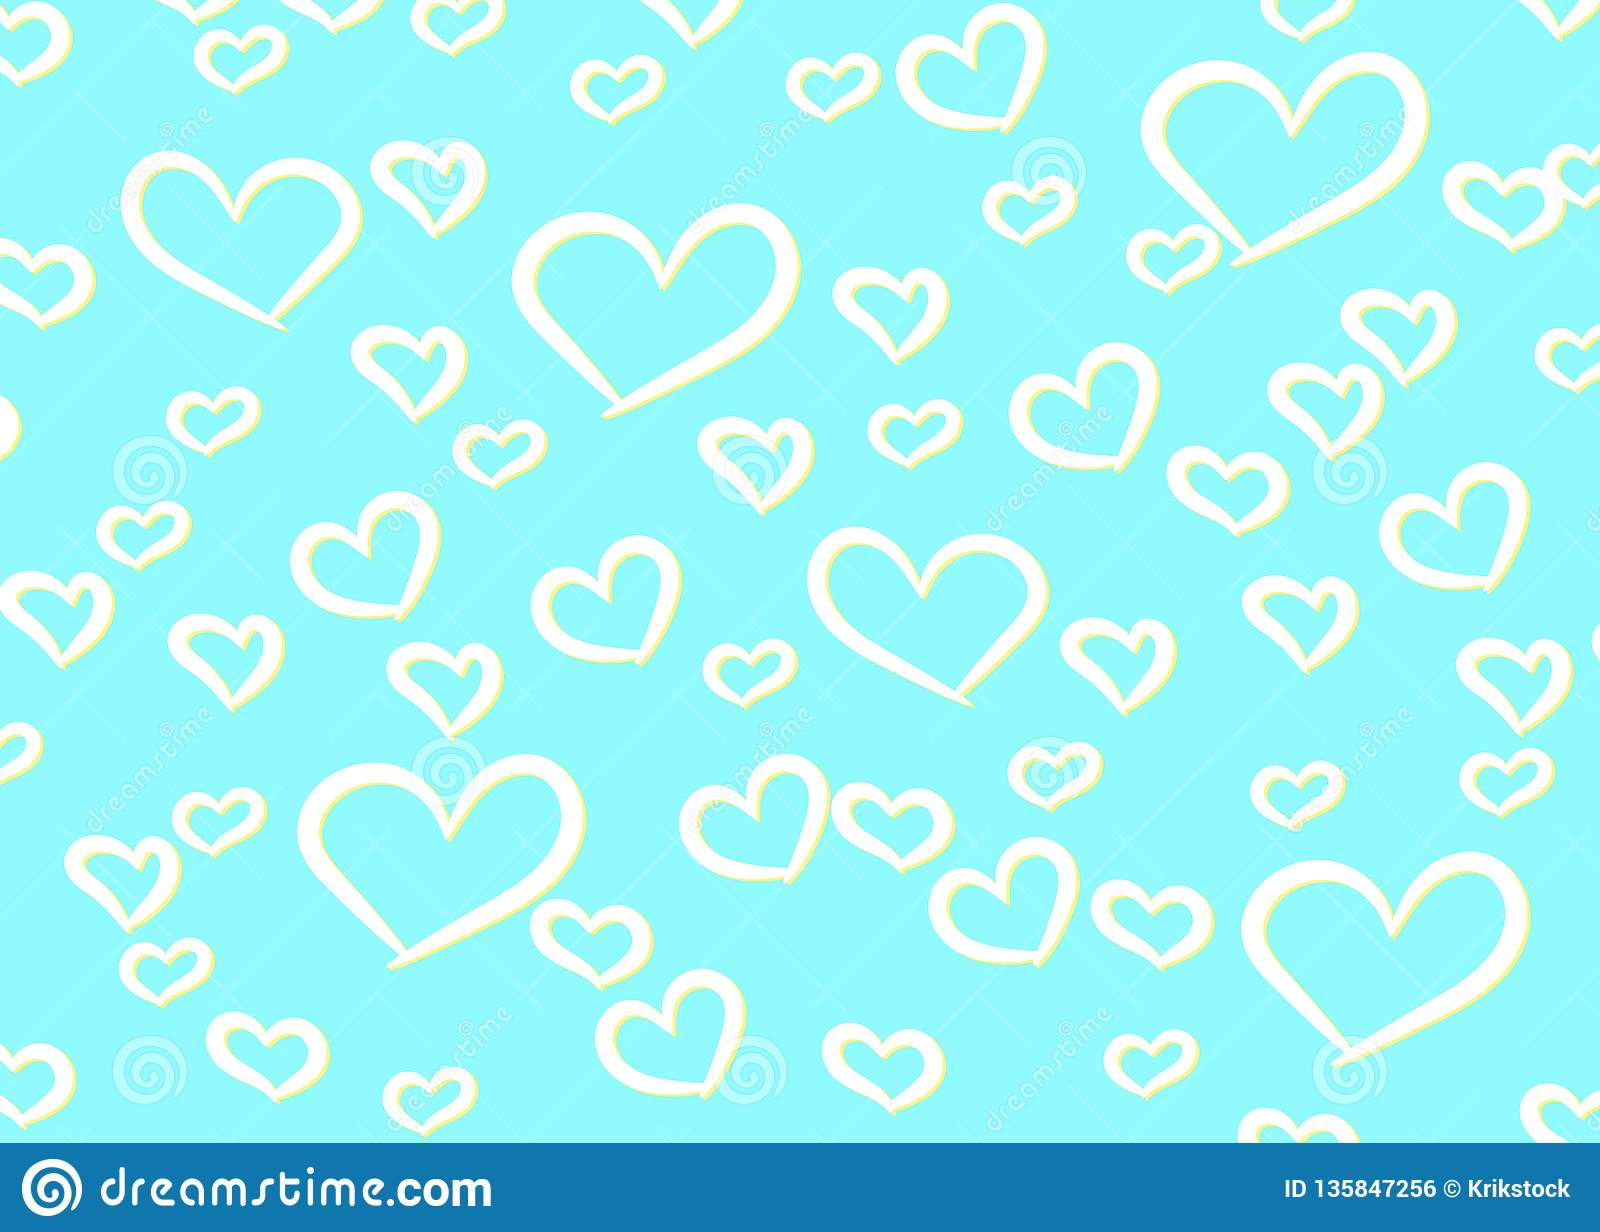 Hearts Design Background. Greeting Card Valentine Day. Vector illustration. Heart pattern. Falling Confetti. EPS 10.